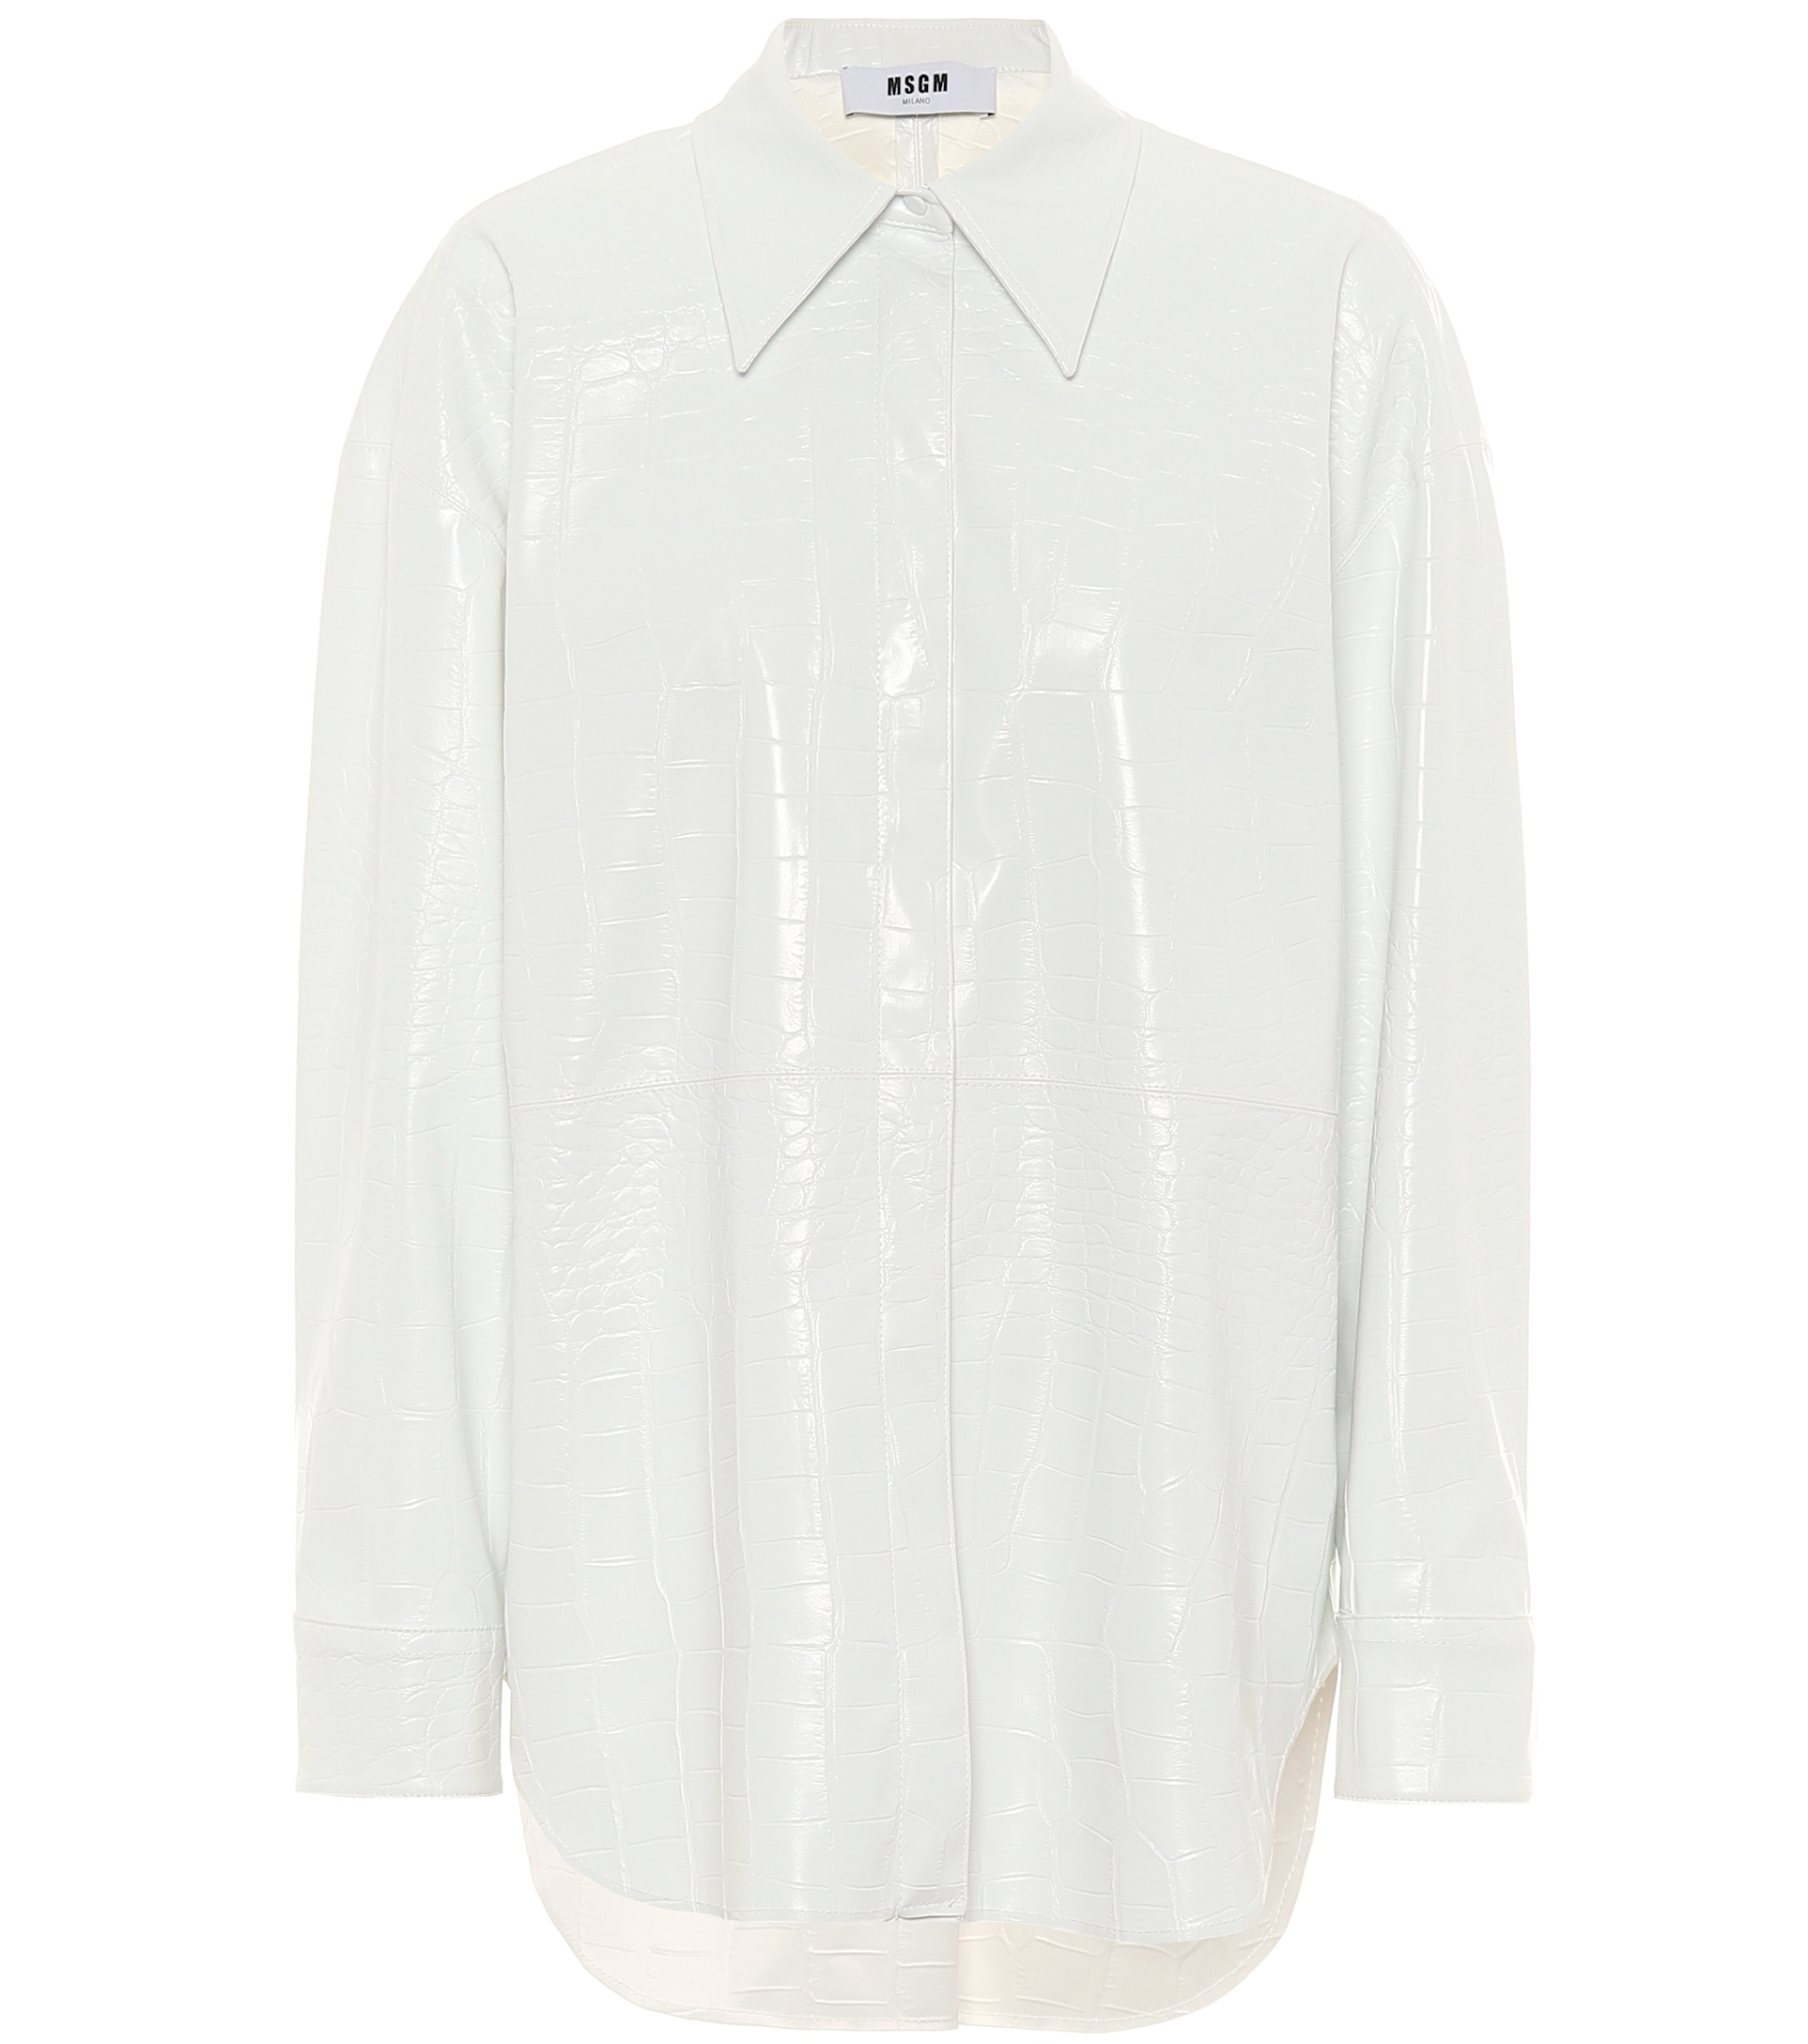 Faux patent leather shirt by MSGM, available on mytheresa.com for EUR234 Kylie Jenner Top Exact Product